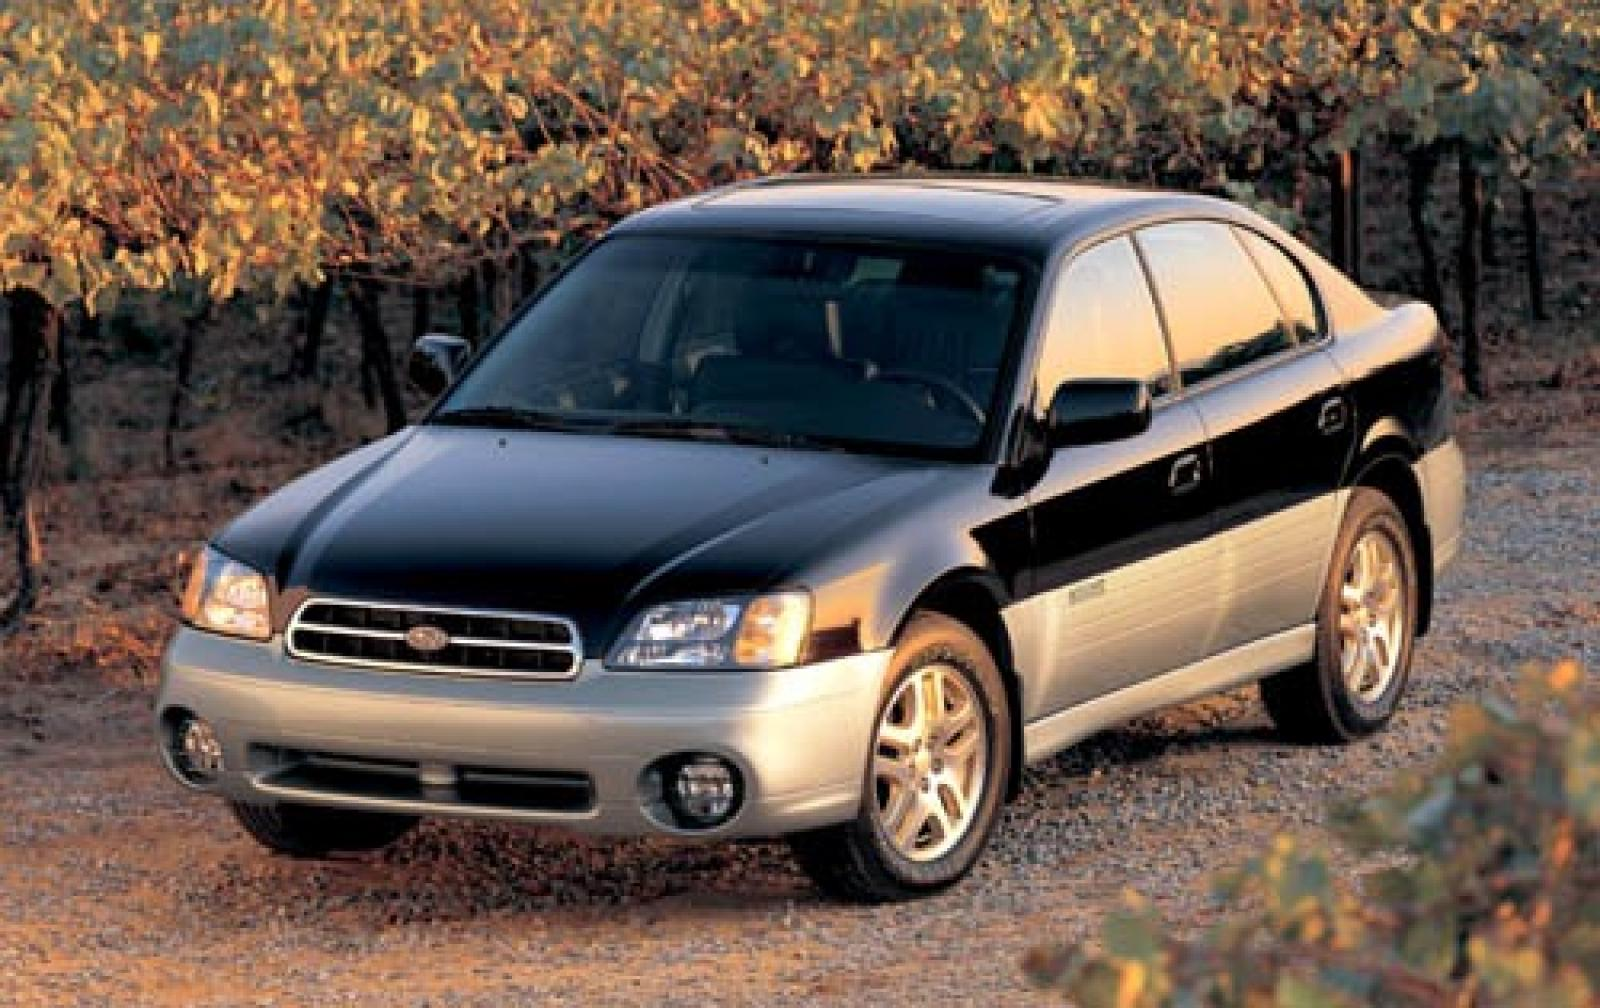 2004 subaru outback information and photos zombiedrive 800 1024 1280 1600 origin 2004 subaru outback vanachro Gallery